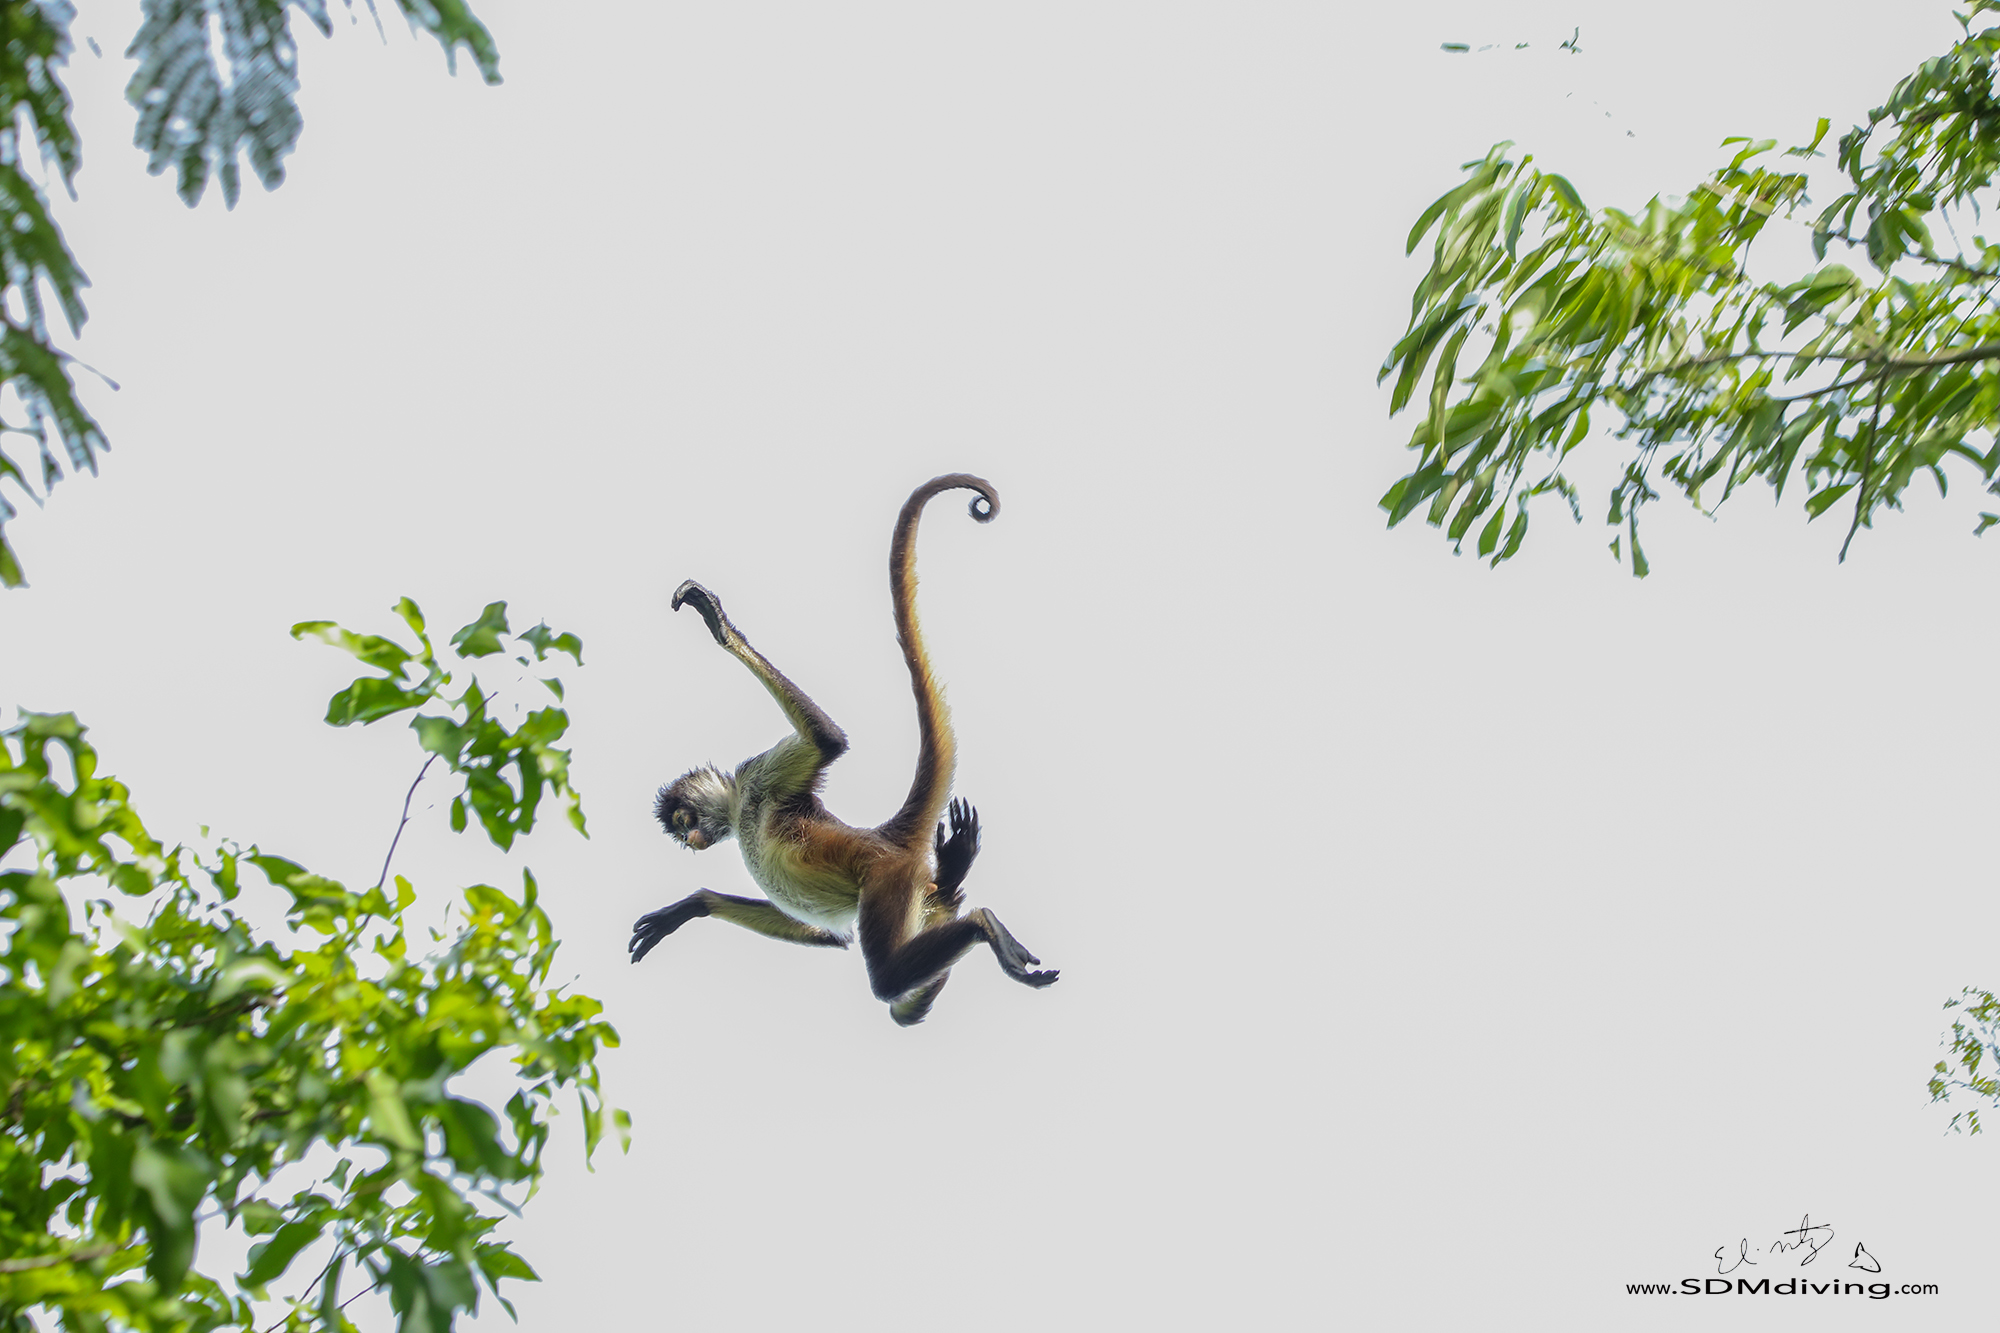 Spider monkey jumping from tree to tree.